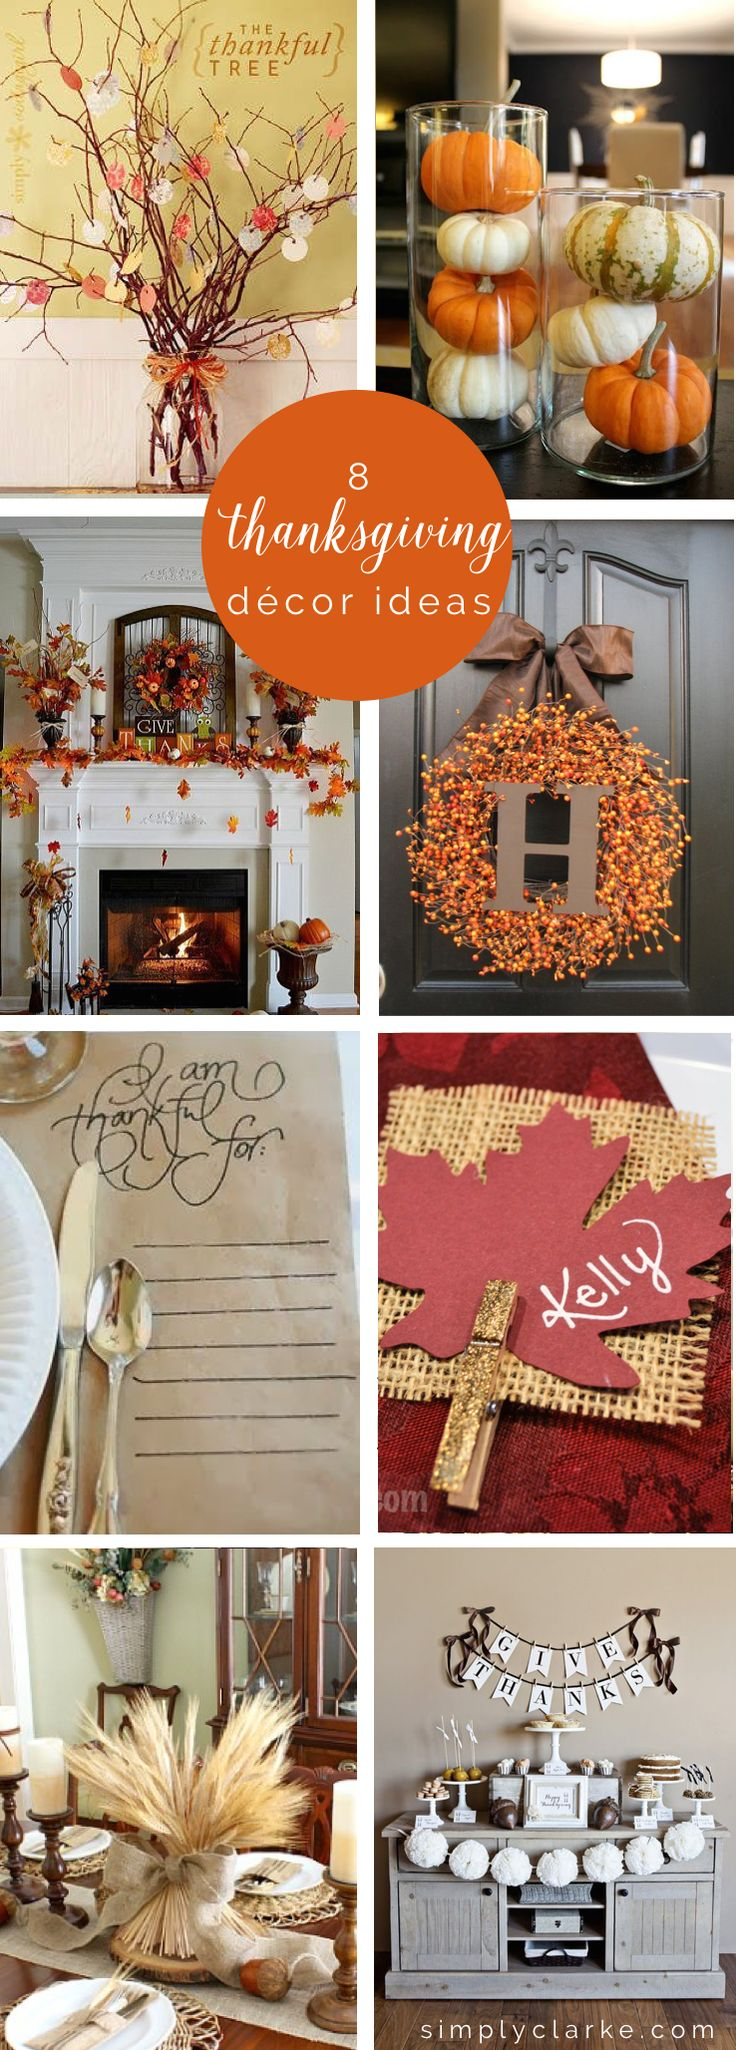 Thanksgiving decor mantle - 8 Thanksgiving Decor Ideas